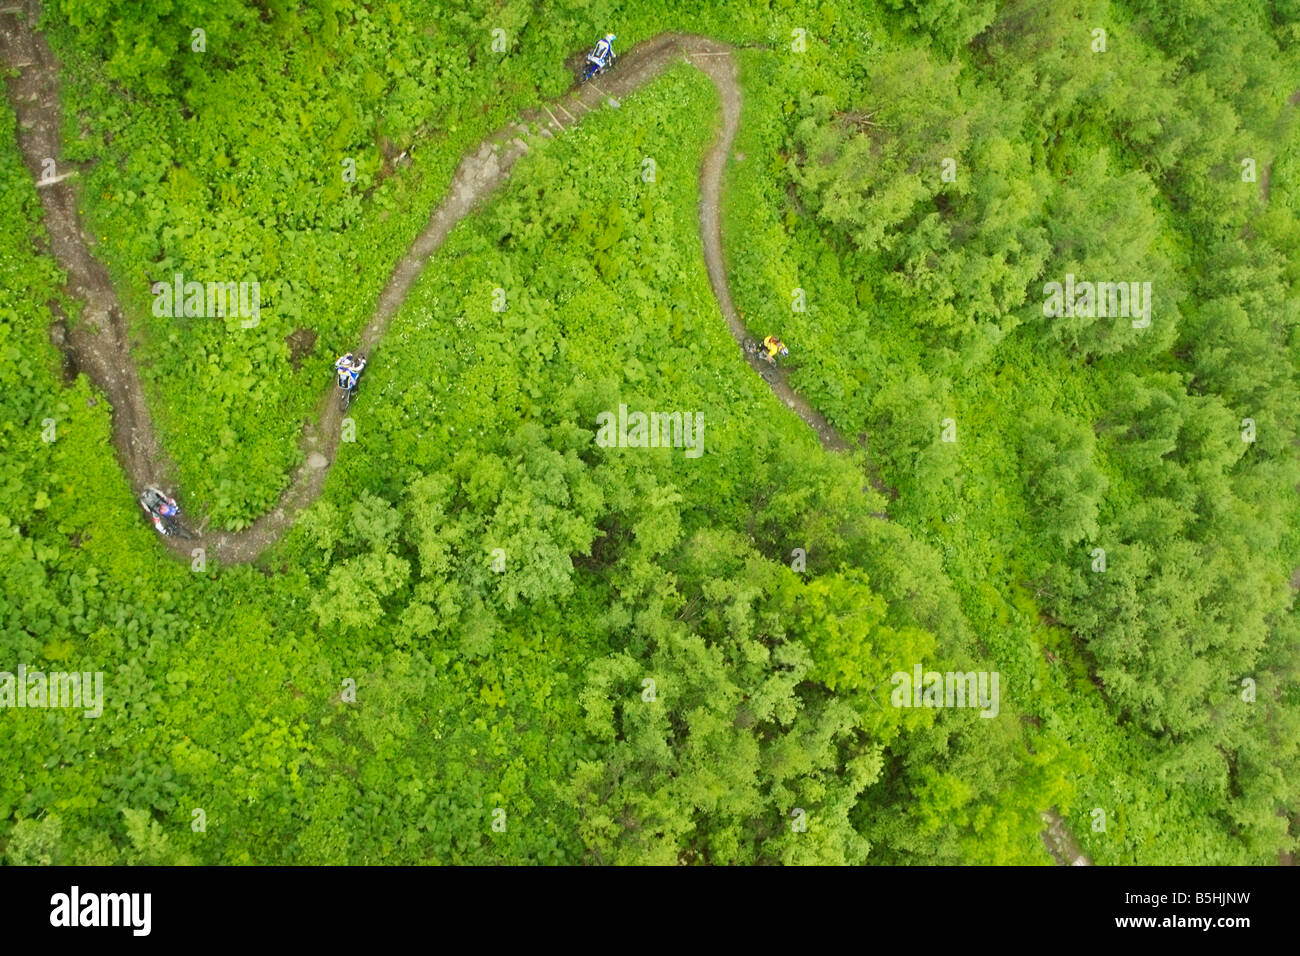 Four downhill cyclists on a path, aerial perspective - Stock Image